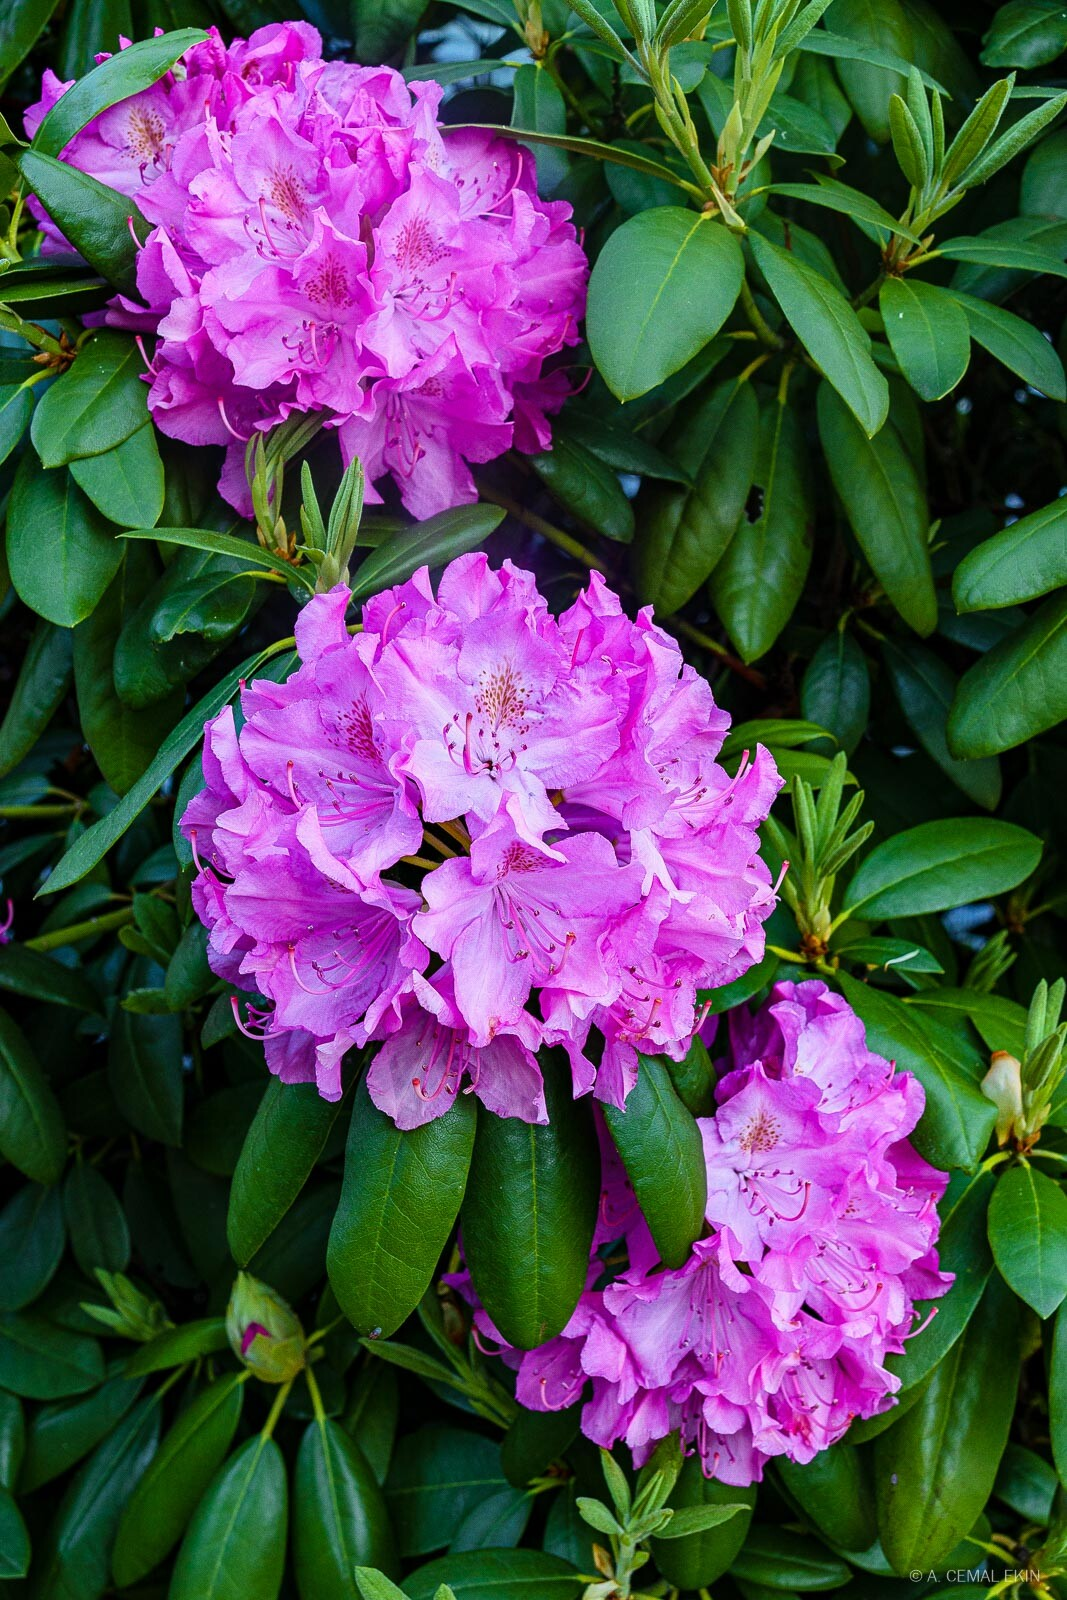 Rhododendron blossoms symbolizing hope and serenity